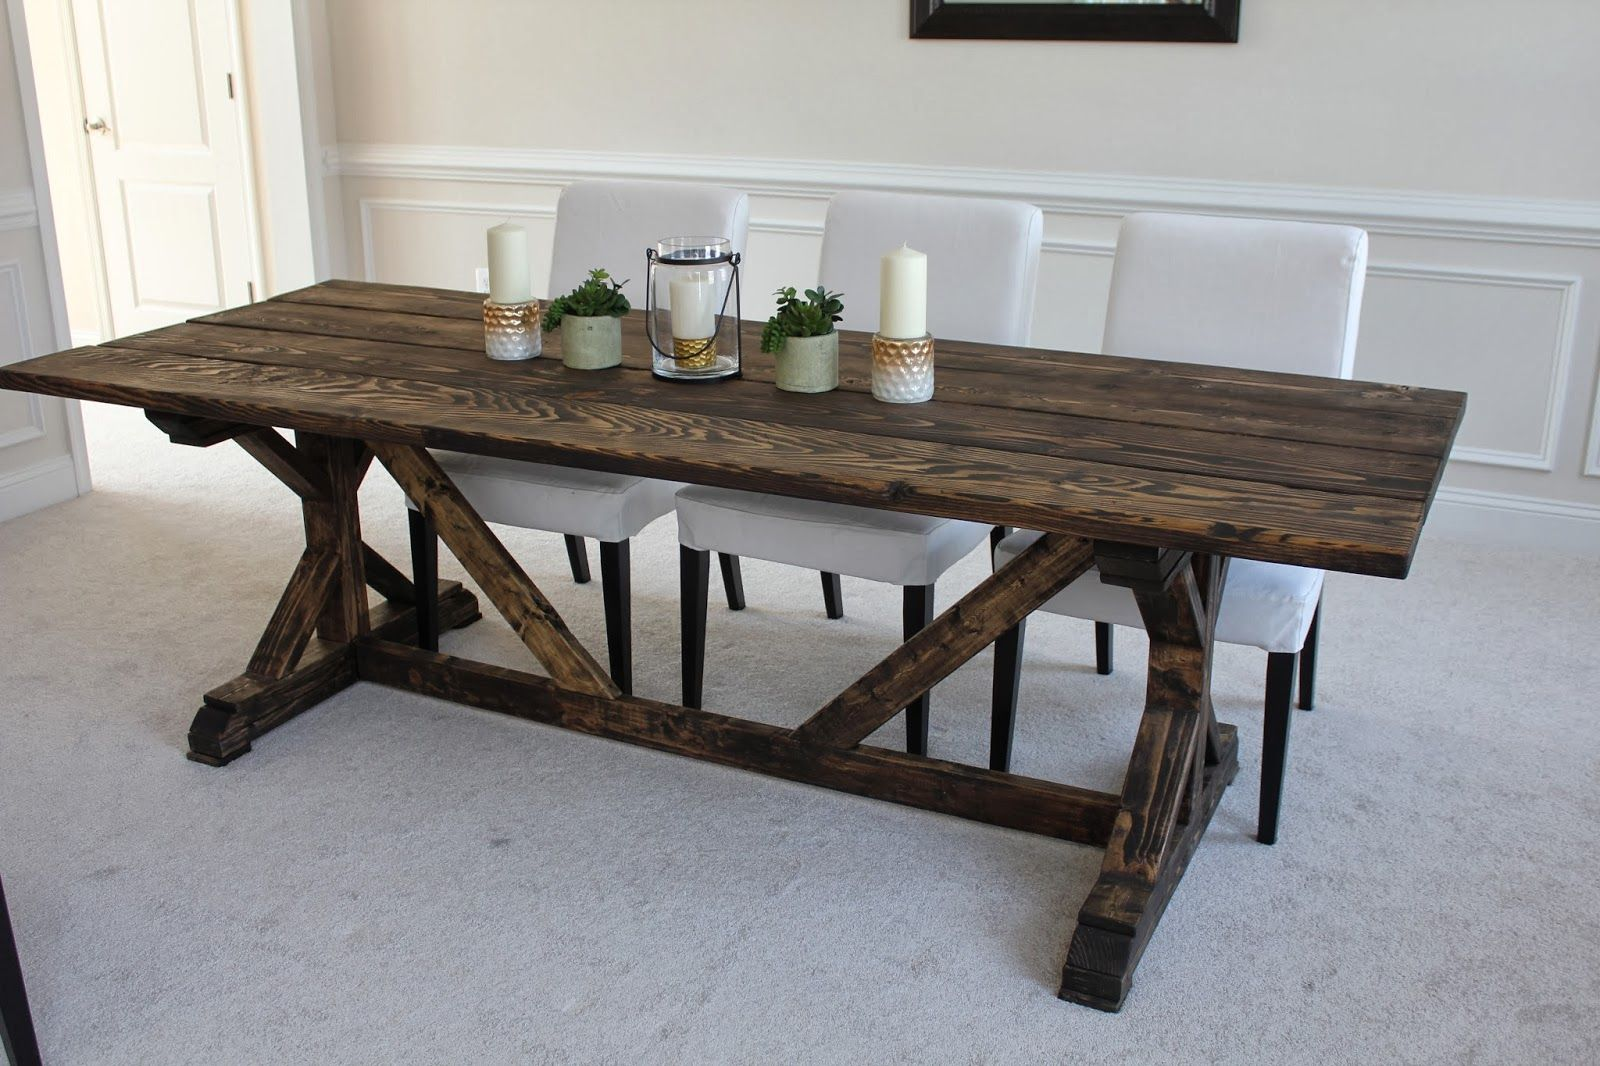 Kitchen table benches  DIY Anthropologieknockoff Farmhouse Table for only  using plans